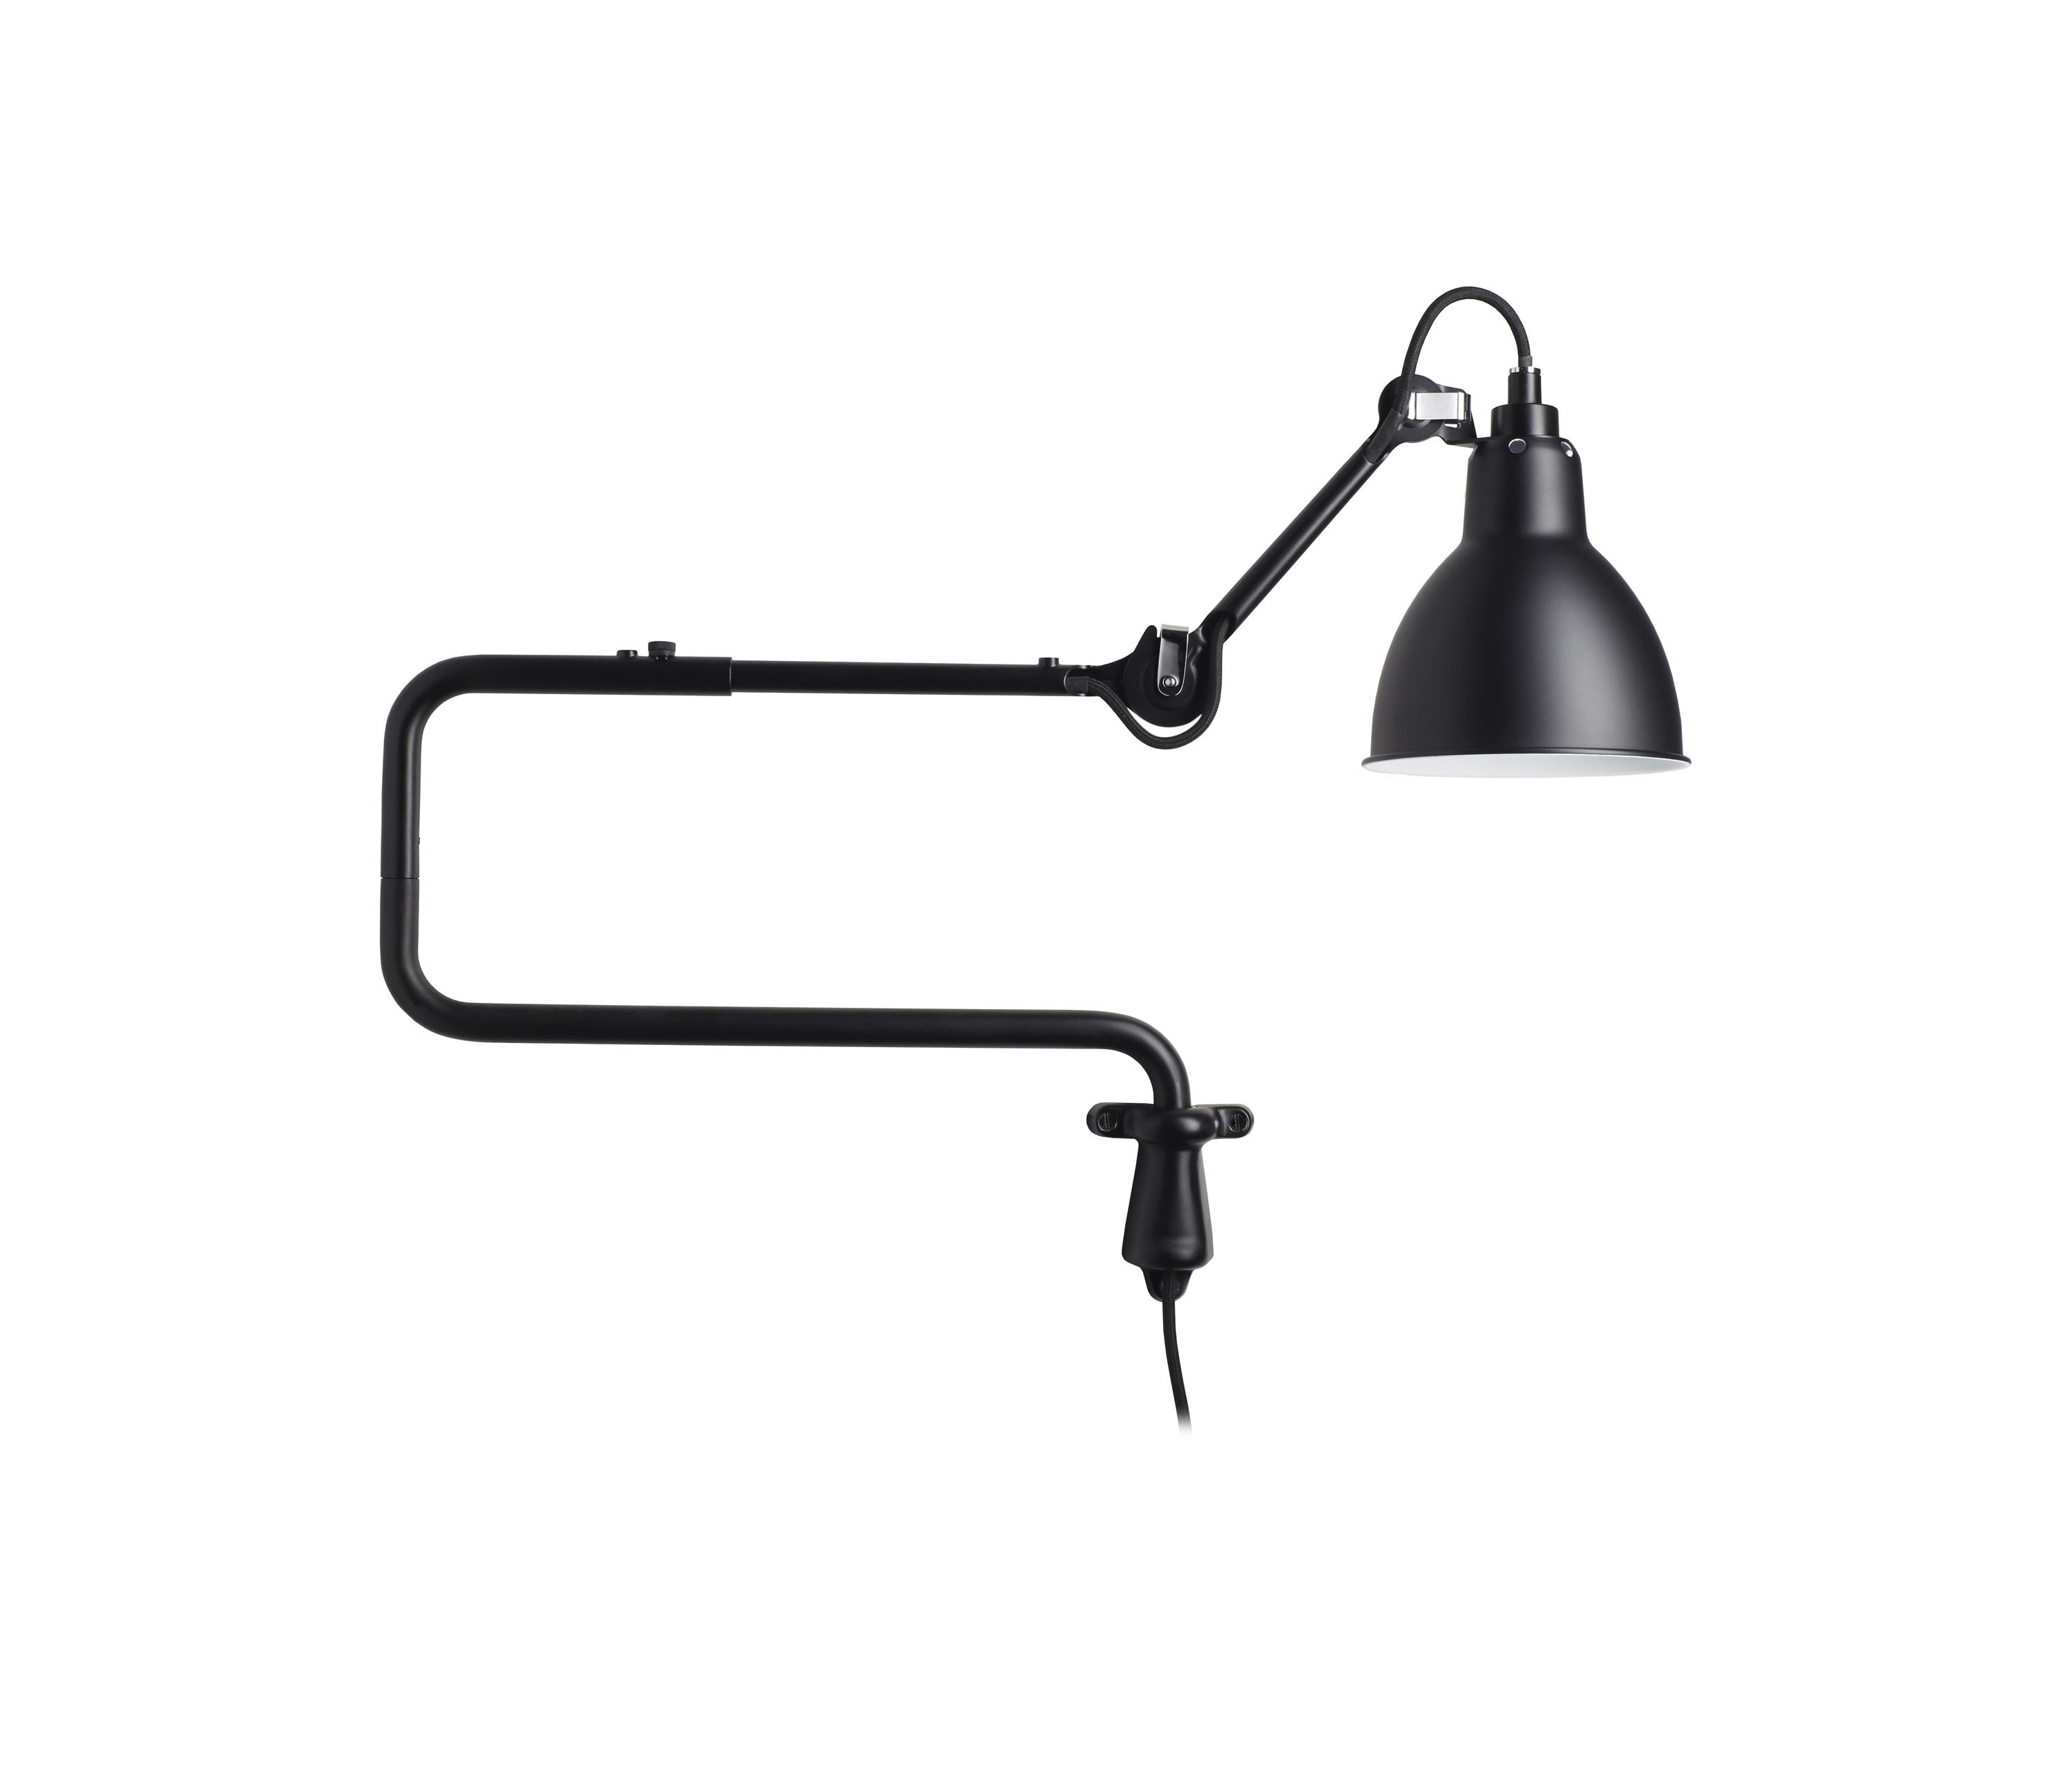 lampe gras n 303 black general lighting from dcw ditions architonic. Black Bedroom Furniture Sets. Home Design Ideas